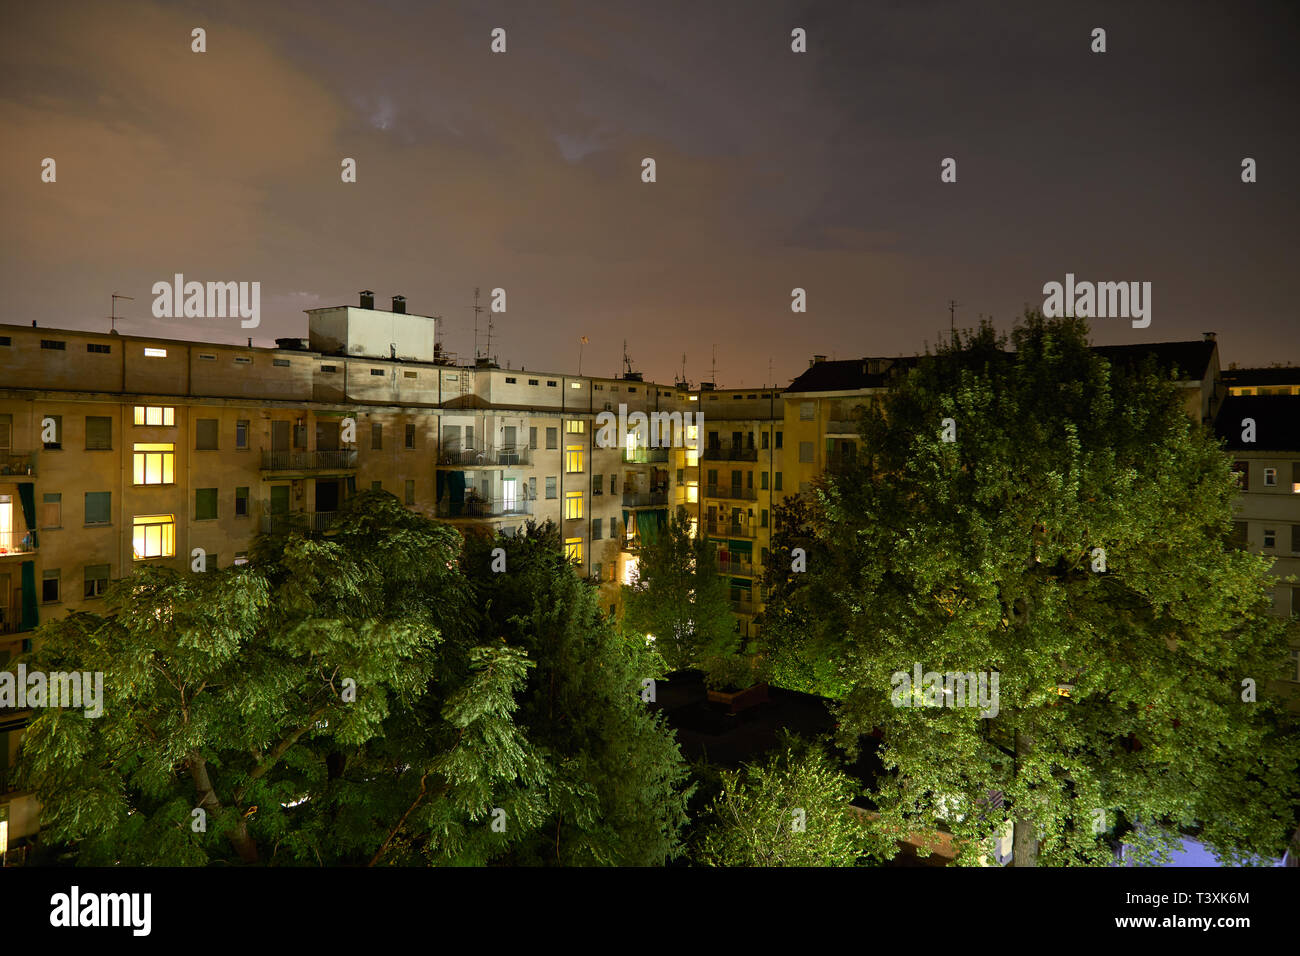 Buildings and green trees at night, illuminated cloudy sky Stock Photo